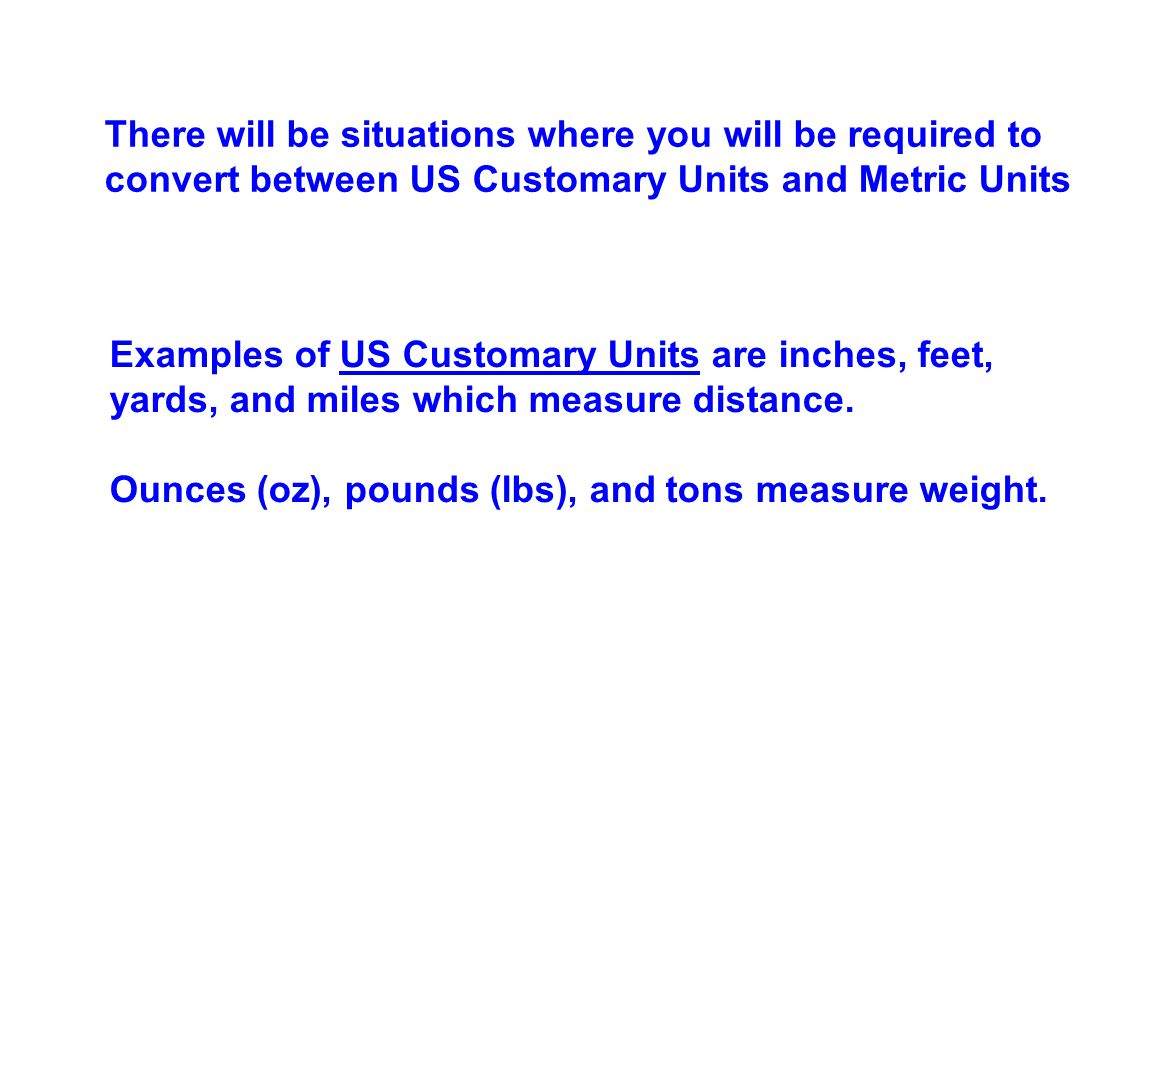 There will be situations where you will be required to convert between US Customary Units and Metric Units Examples of US Customary Units are inches, feet, yards, and miles which measure distance.